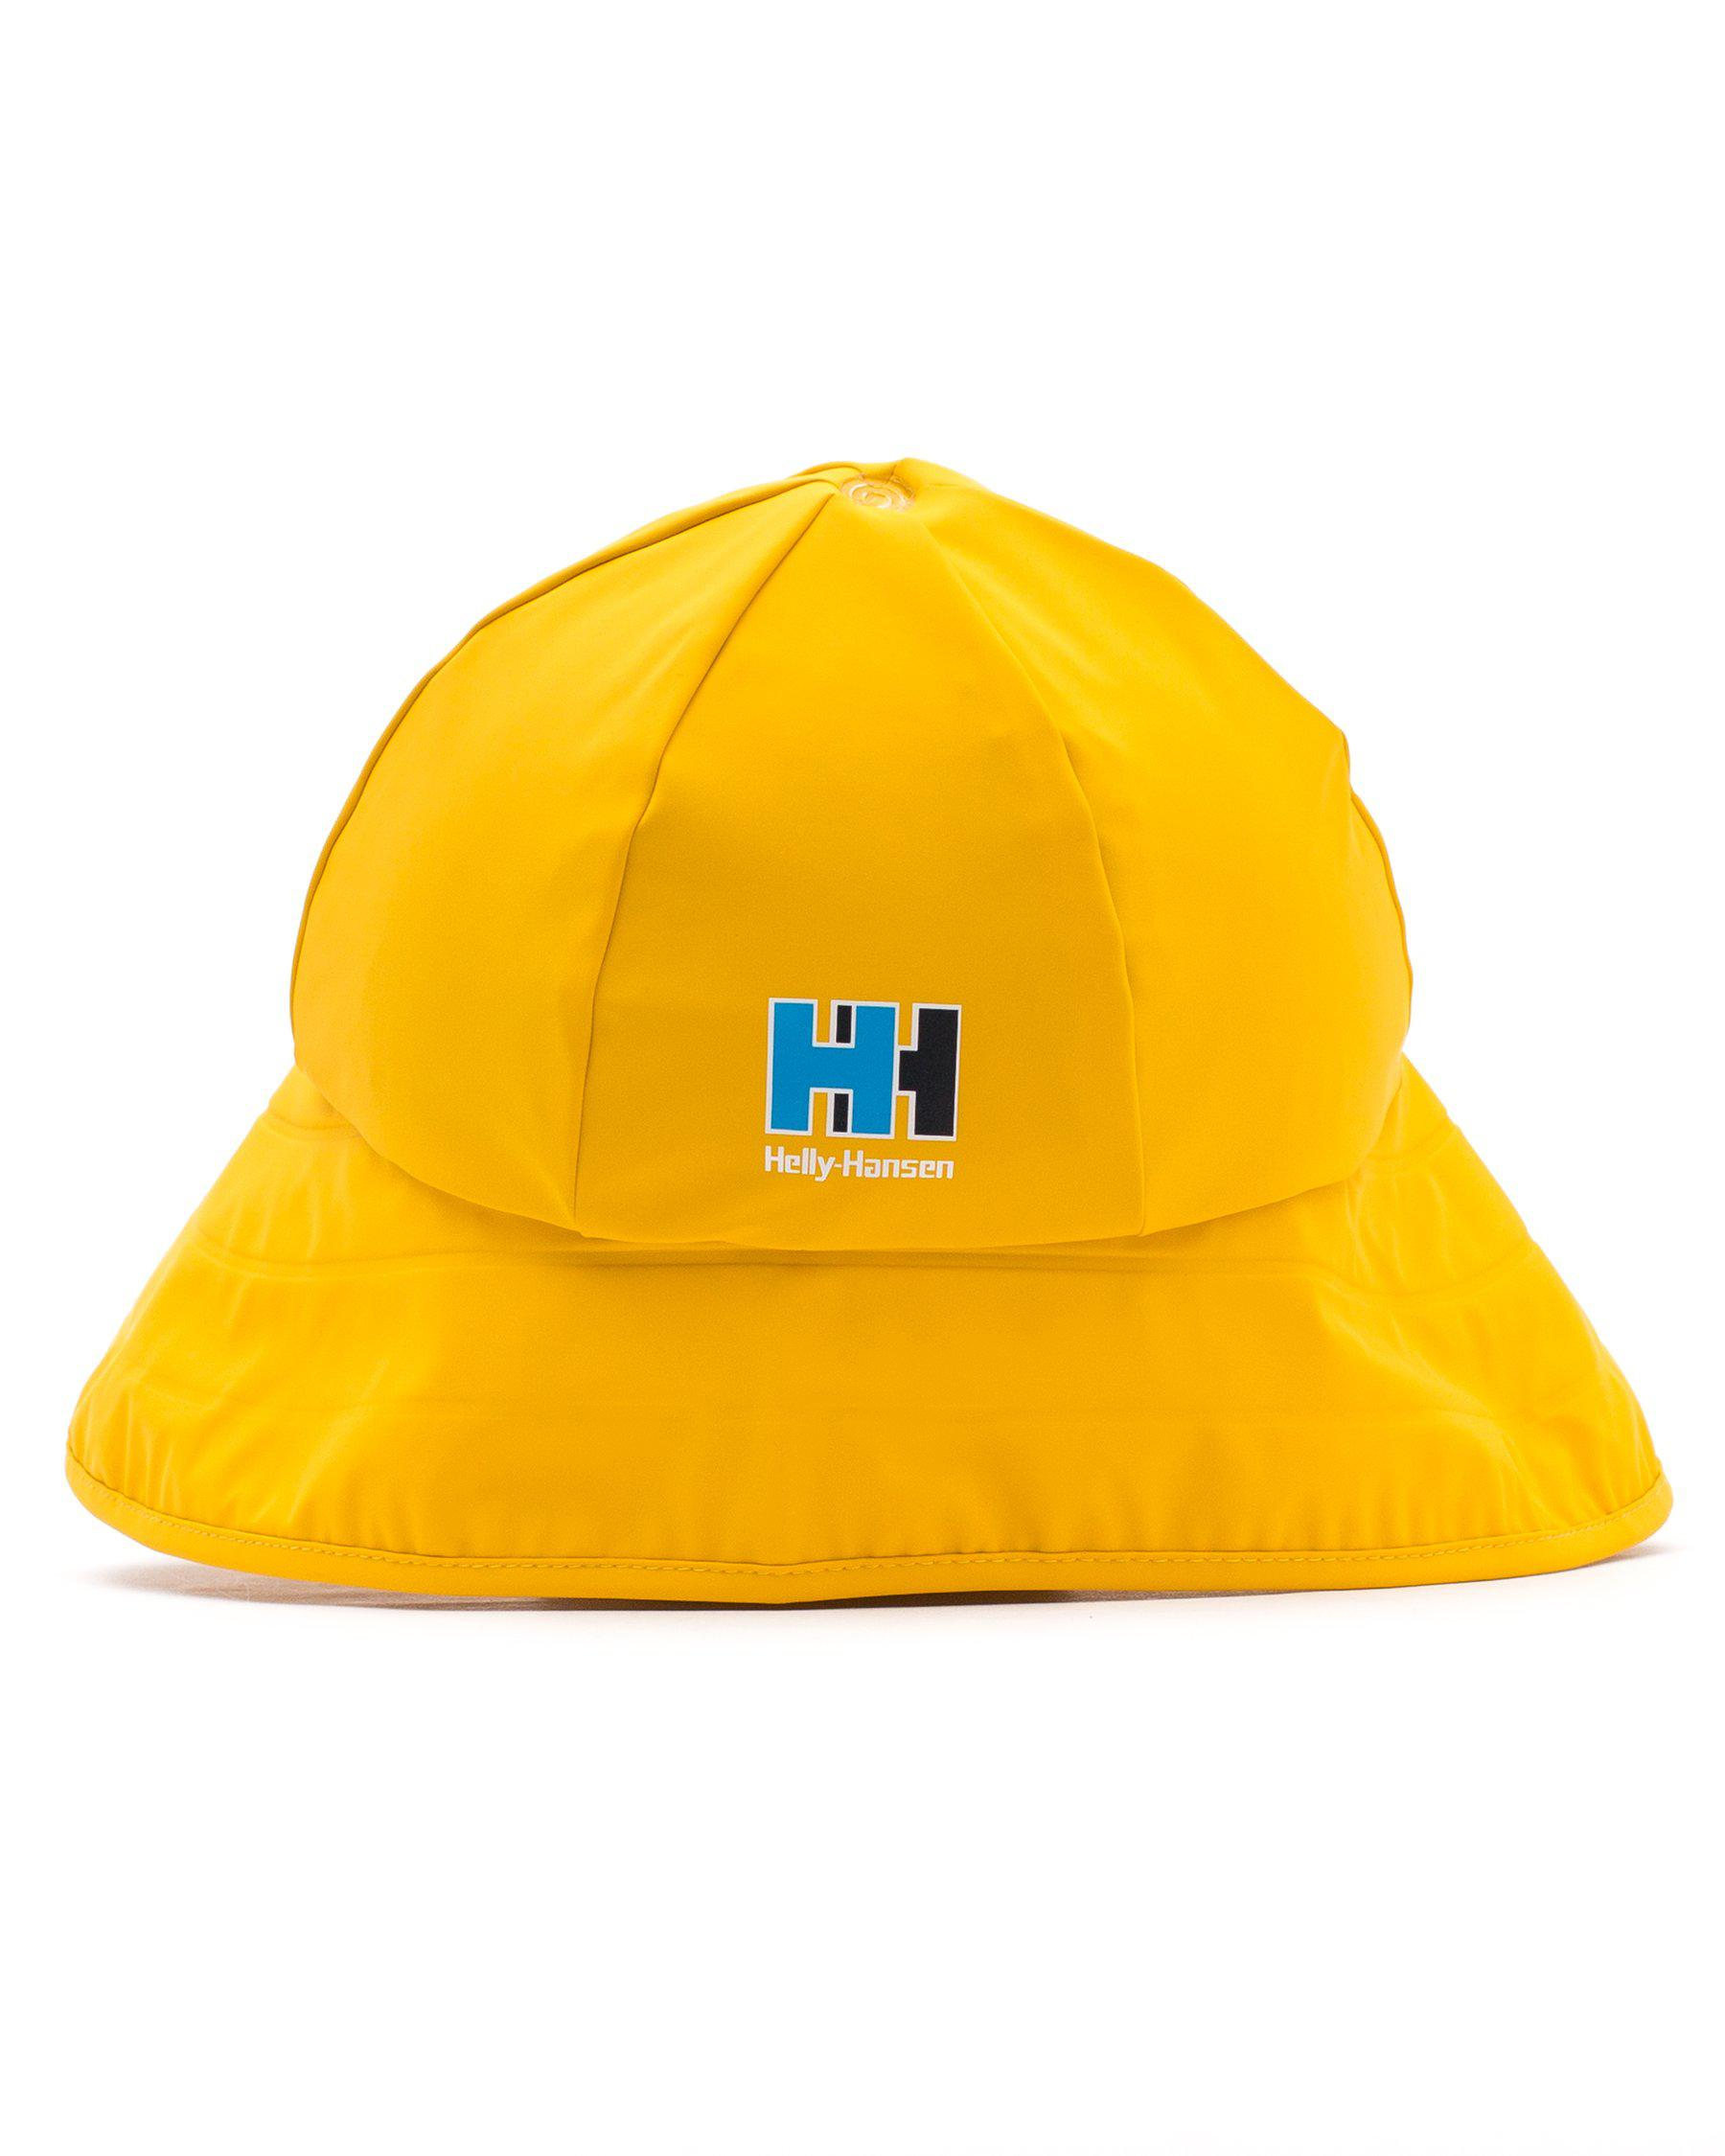 4ac6804ccba Lyst - Helly Hansen Sou wester in Yellow